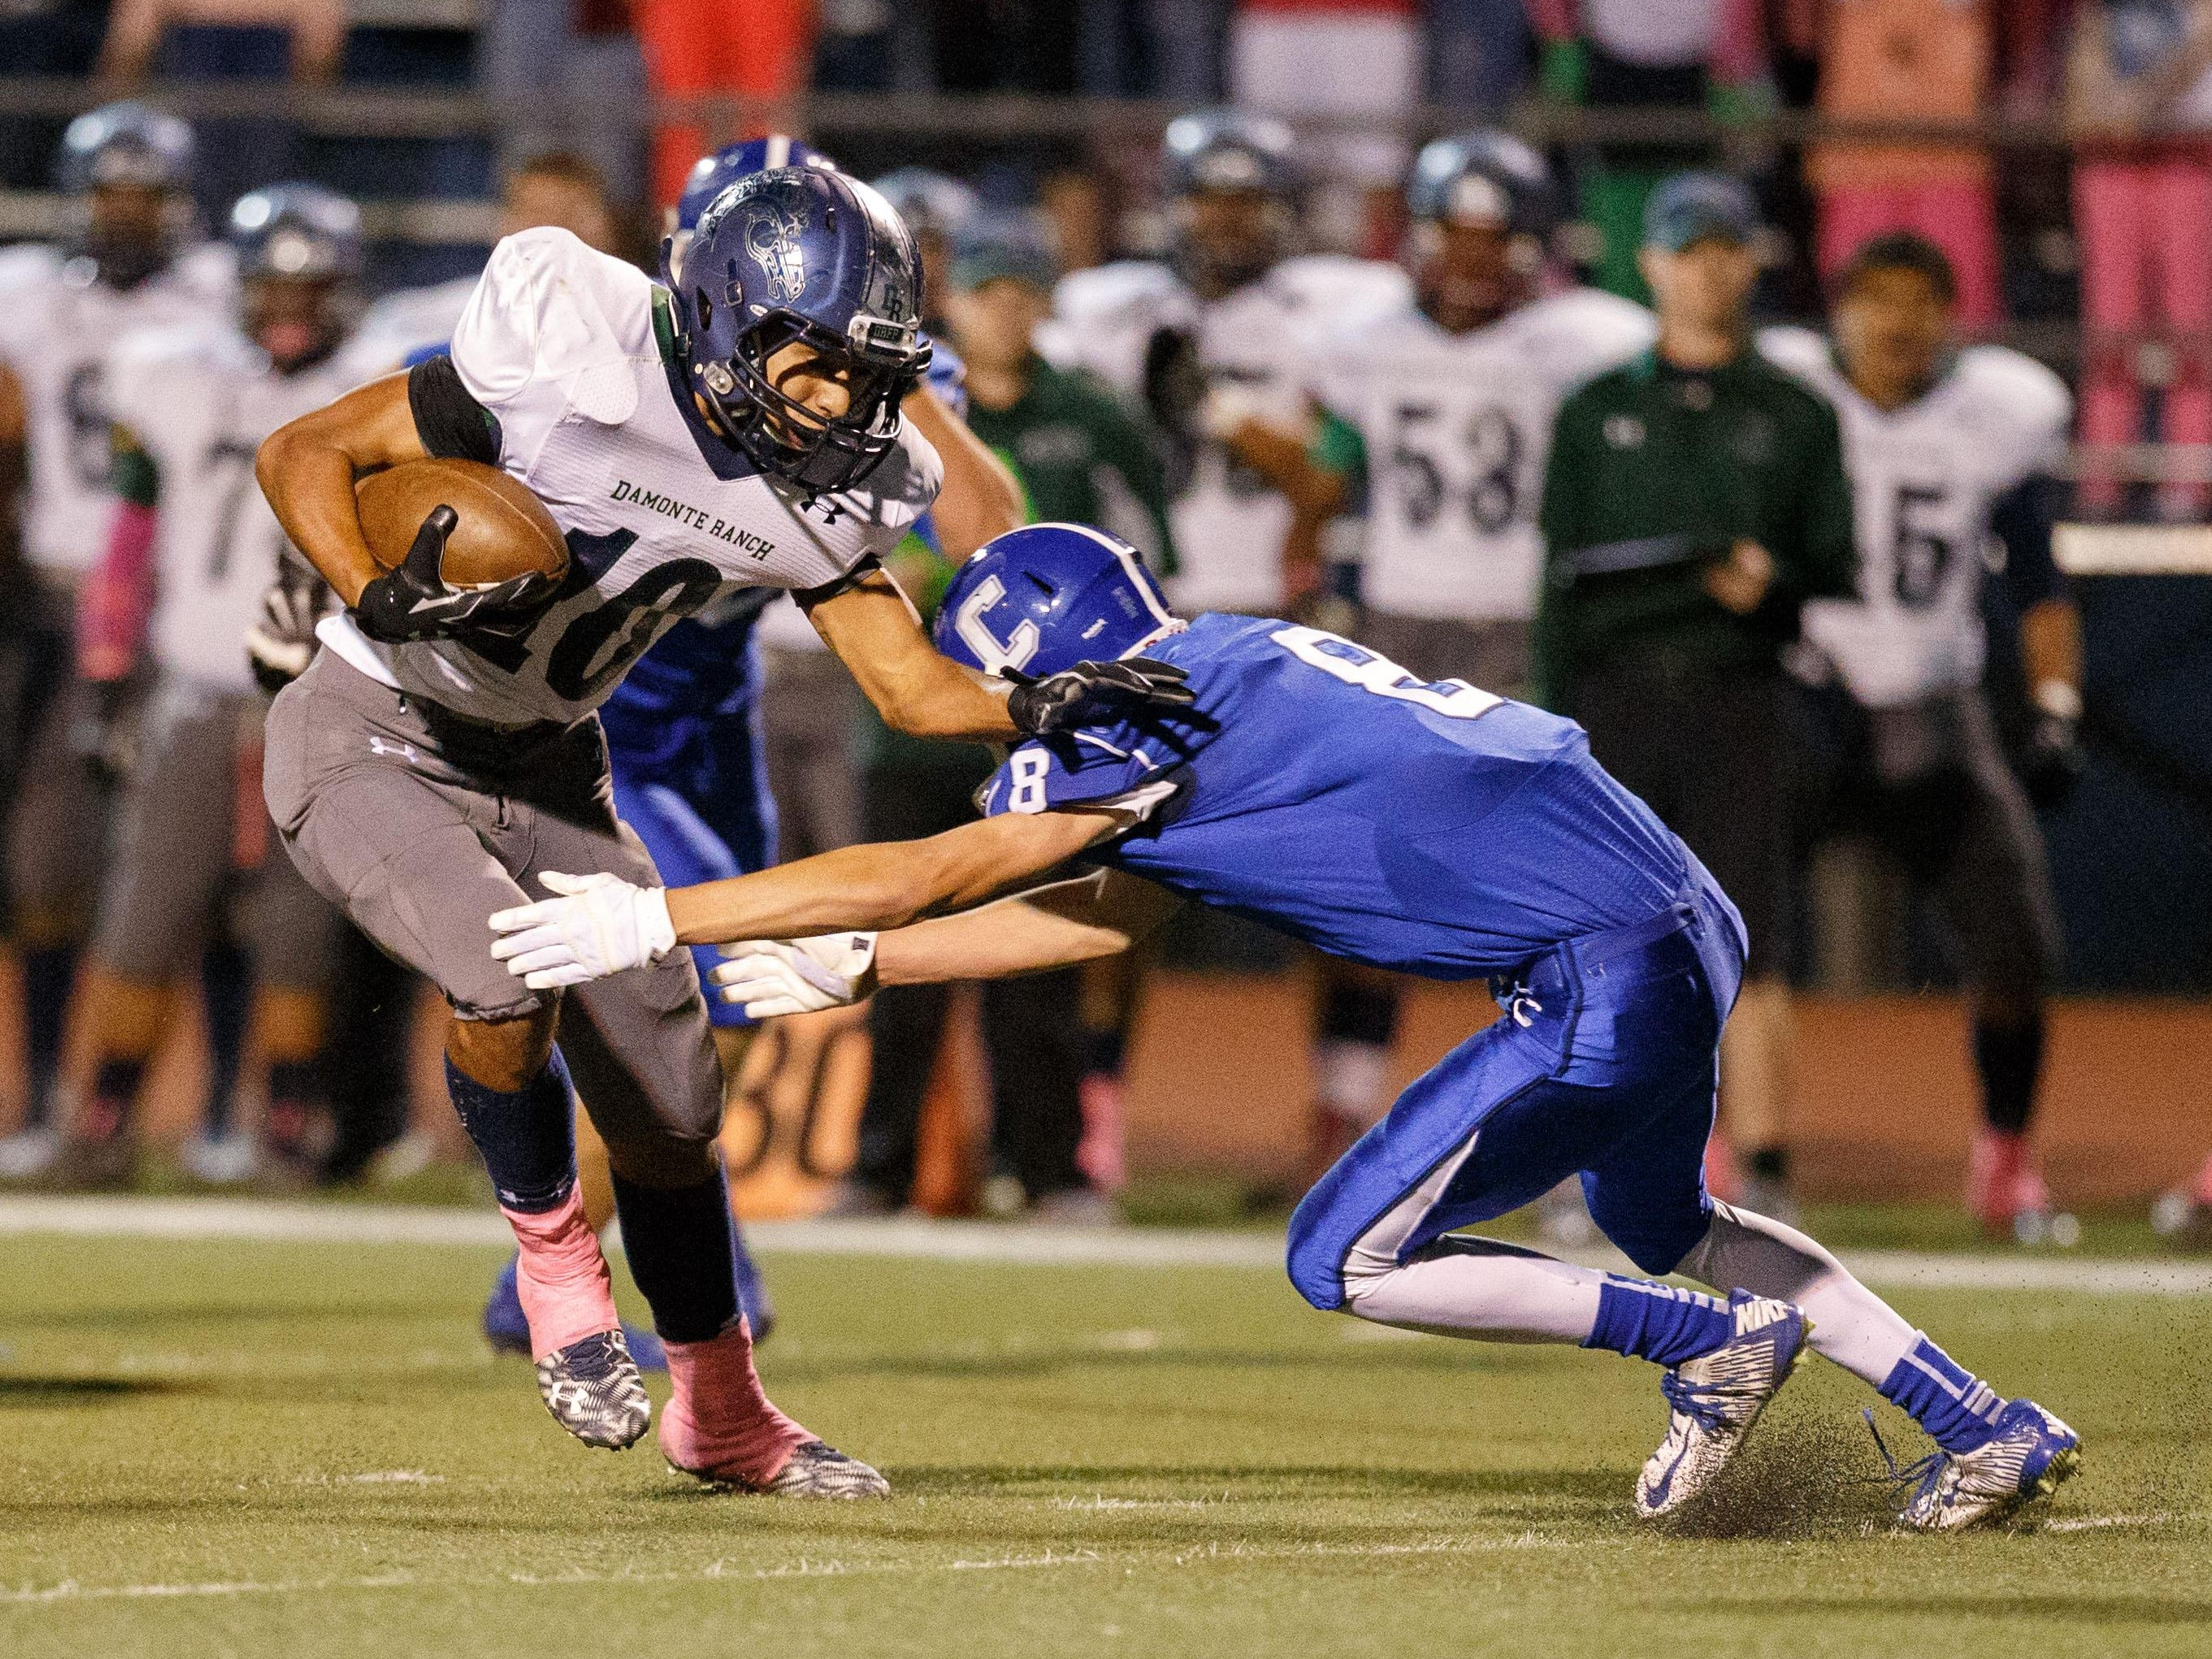 Damonte Ranch's Robert Garlock runs against Carson's Connor Pradere during Friday's game in Carson City.